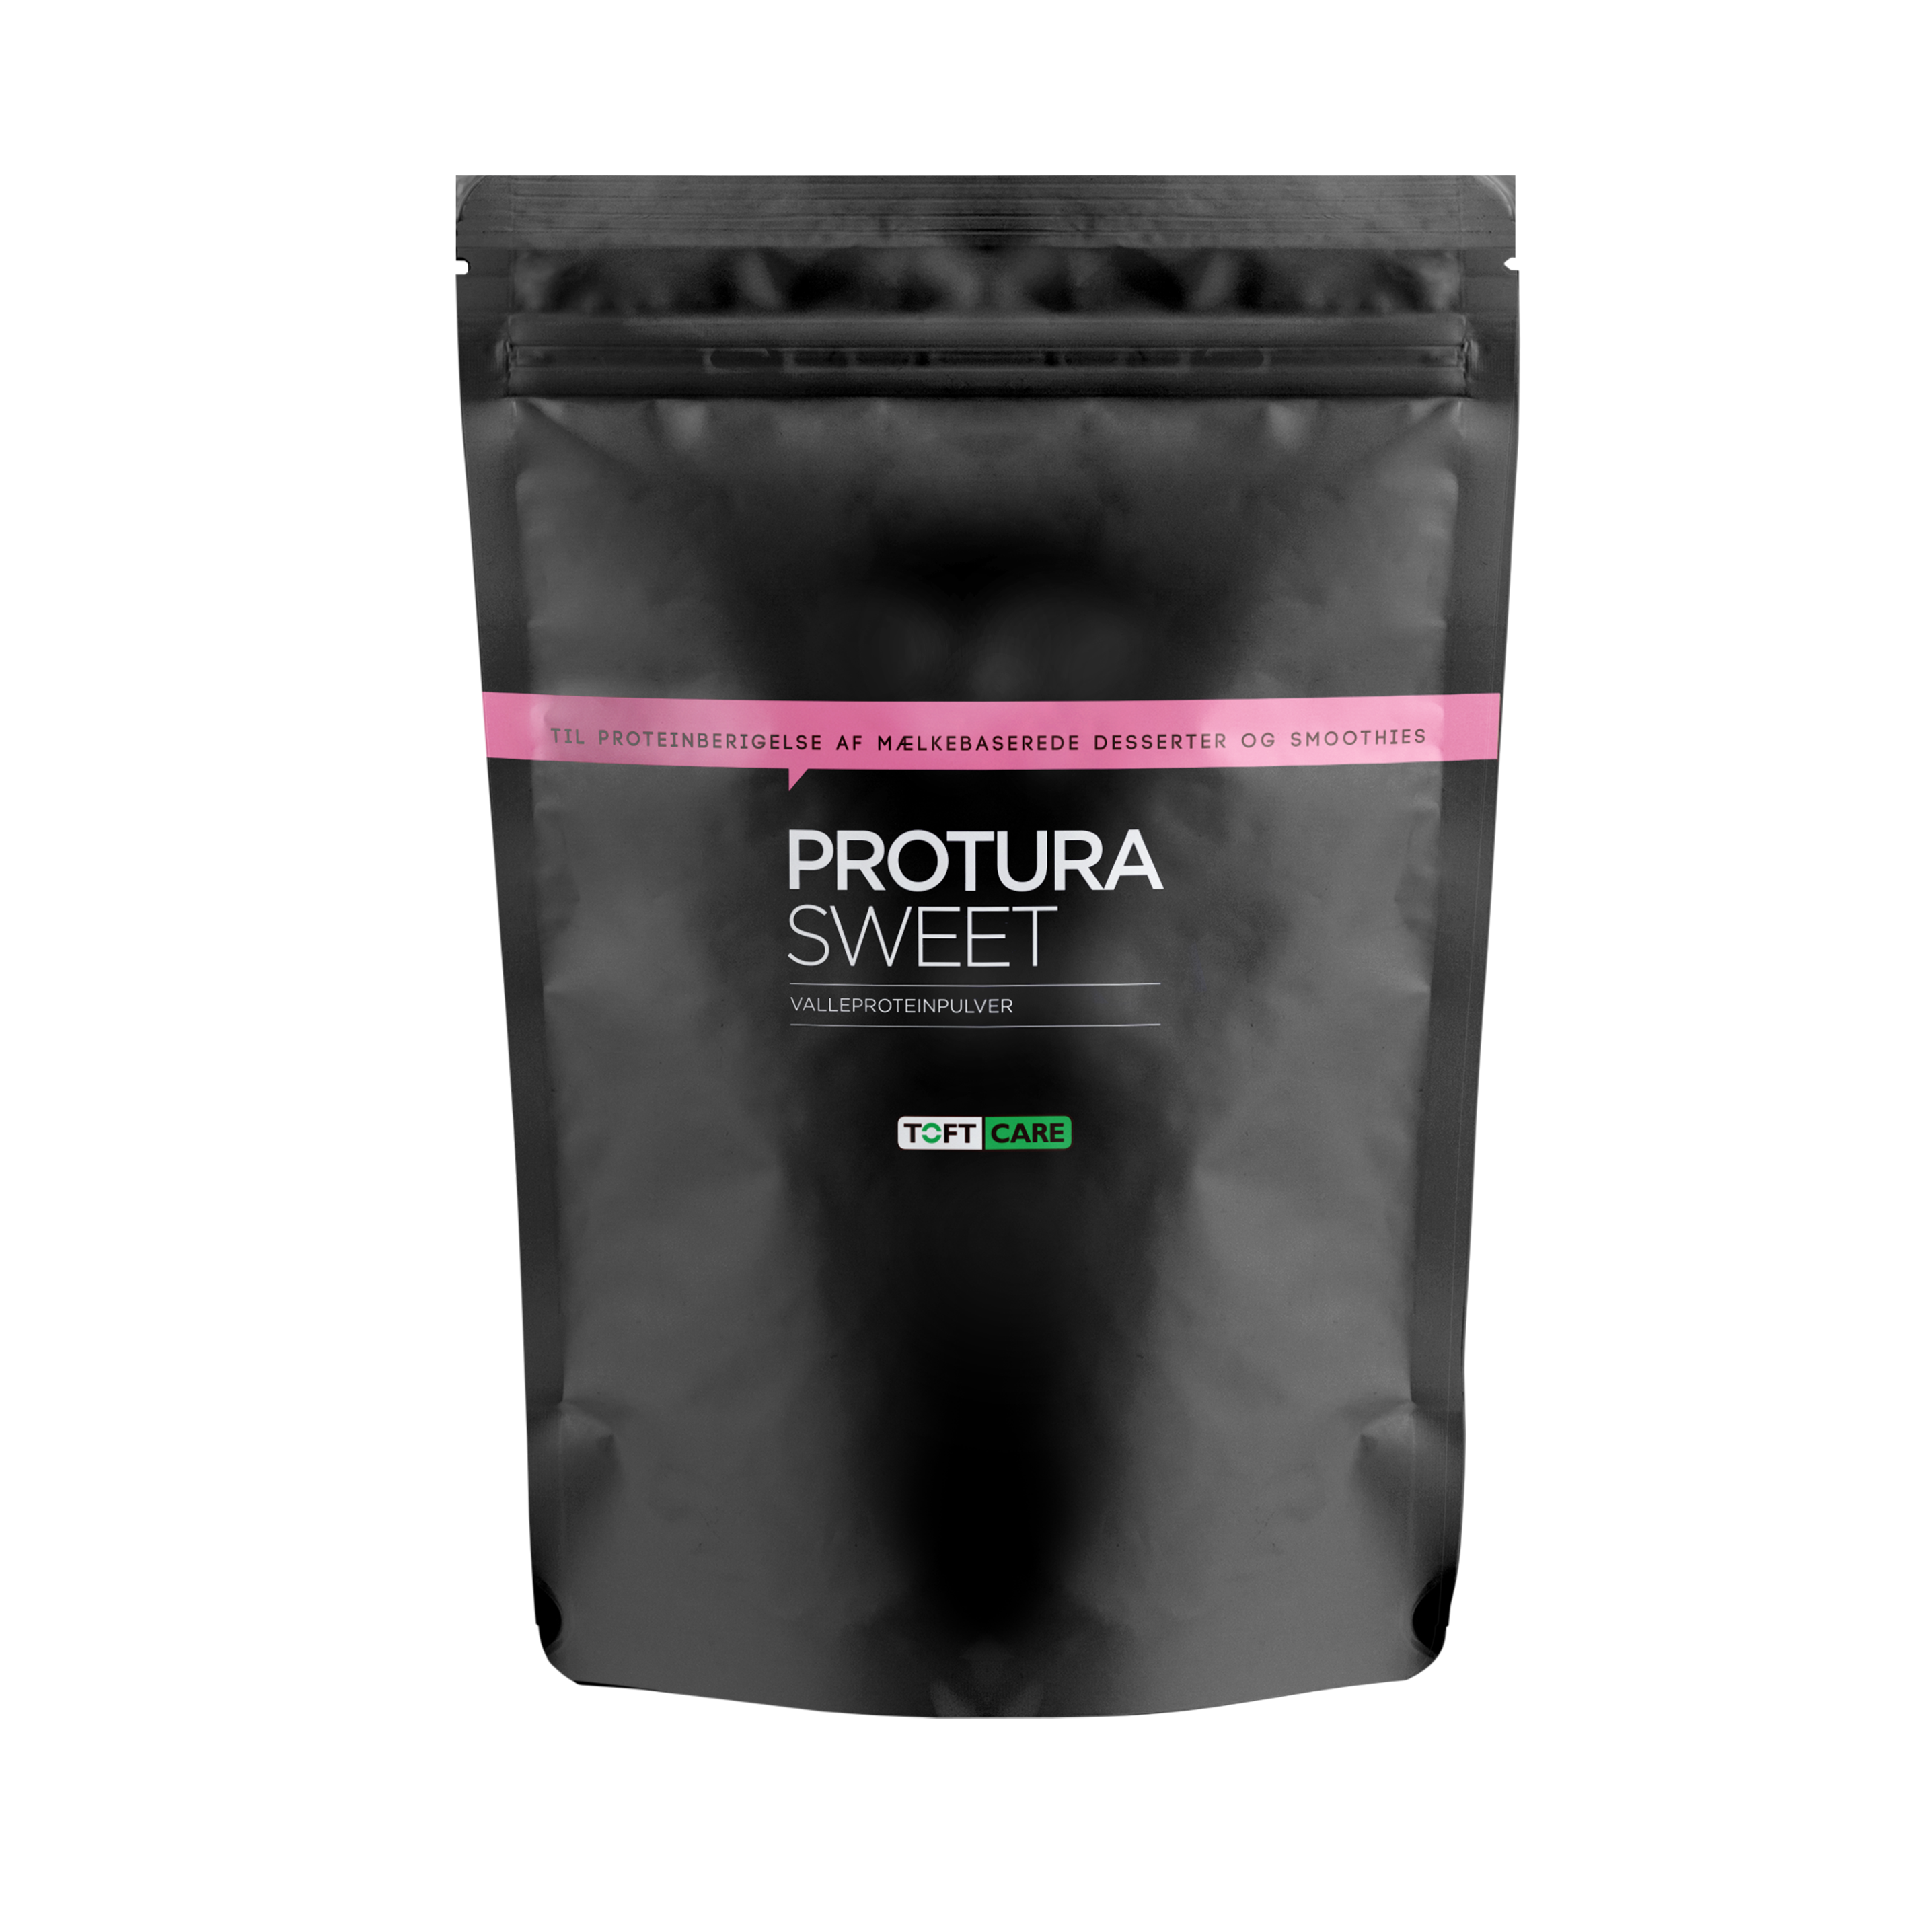 Image of Protura Sweet 300 g